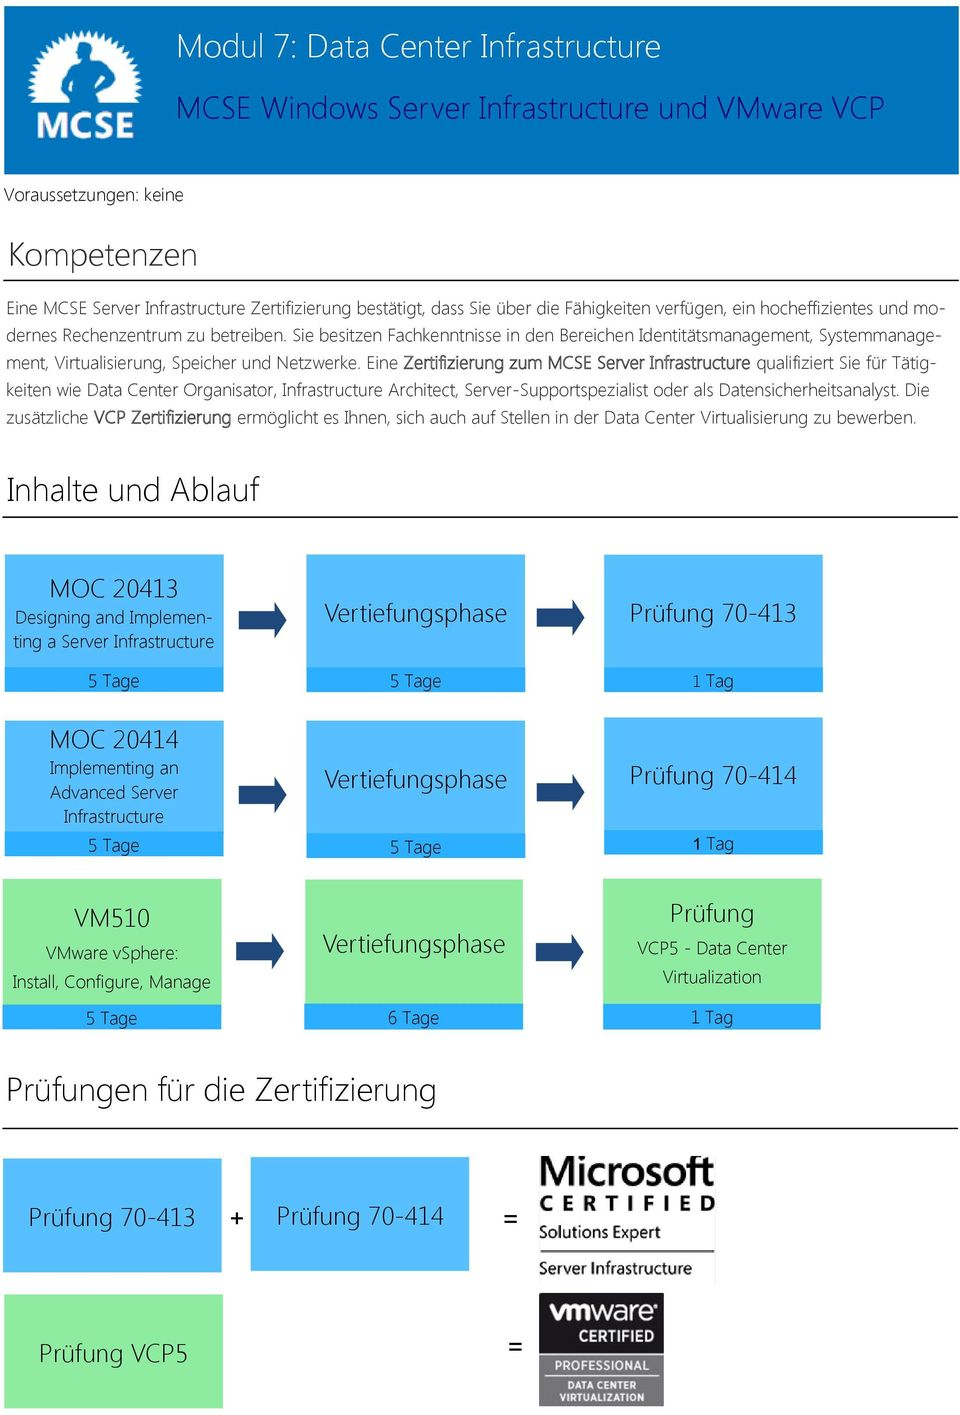 Eine Zertifizierung zum MCSE Server Infrastructure qualifiziert Sie für Tätigkeiten wie Data Center Organisator, Infrastructure Architect, Server-Supportspezialist oder als Datensicherheitsanalyst.